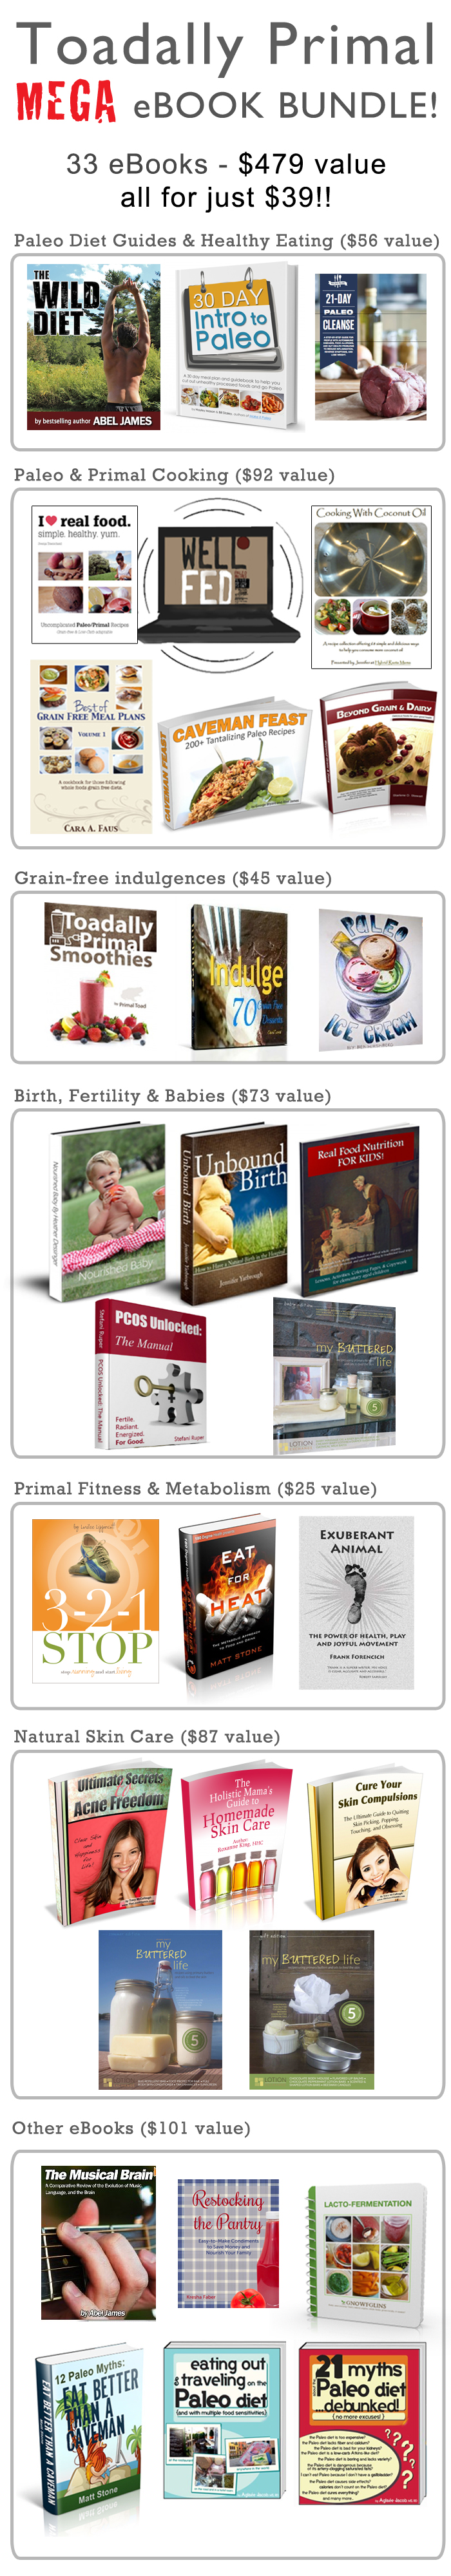 Primal Toad Ebook Bundle